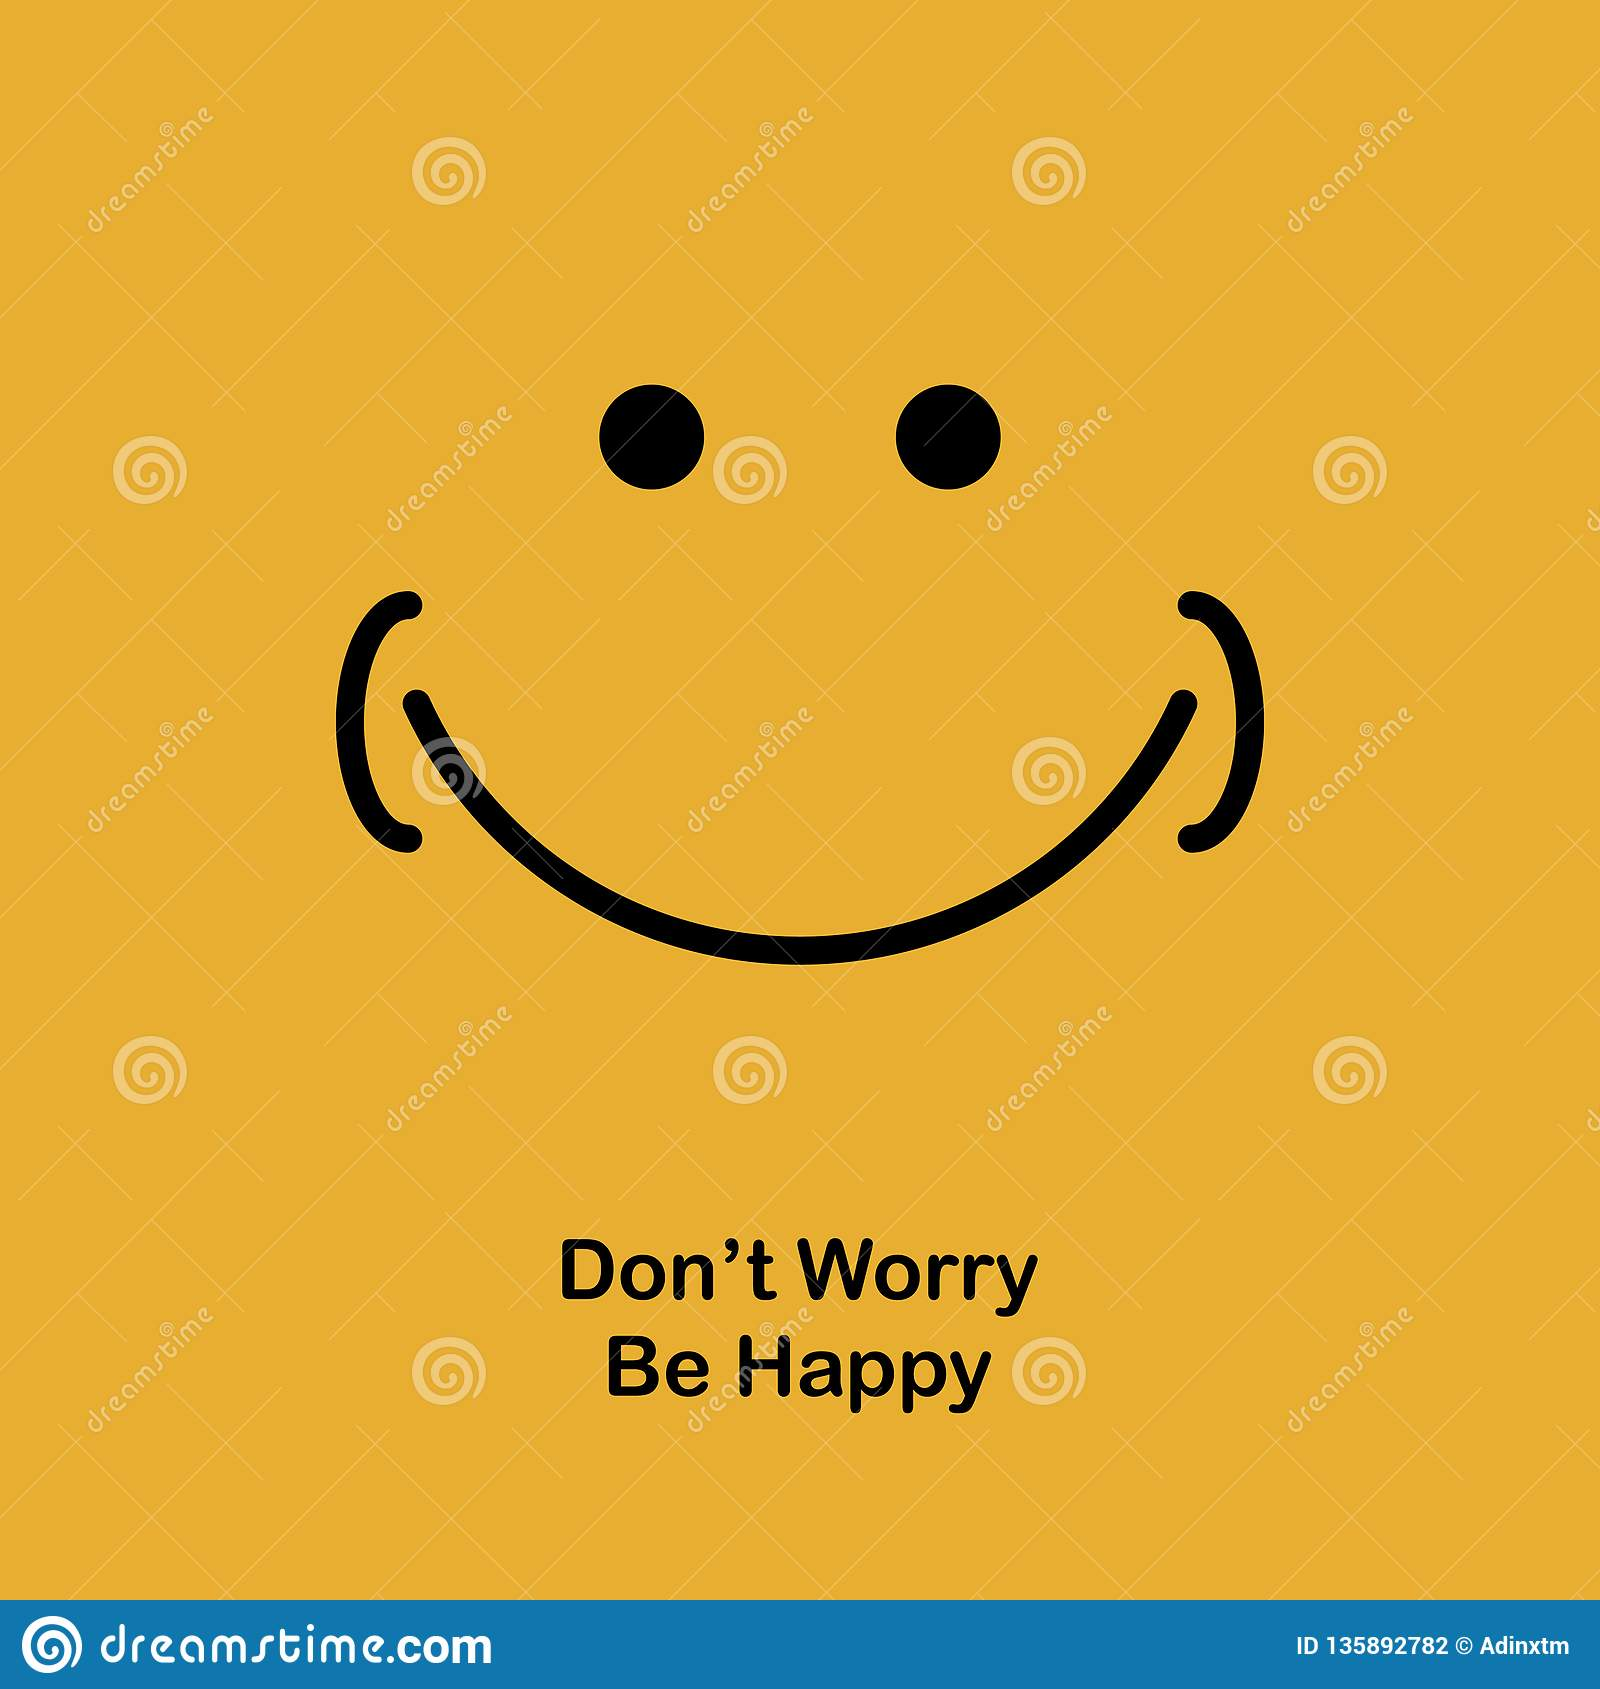 motivational quotes poster banner design happy and smile